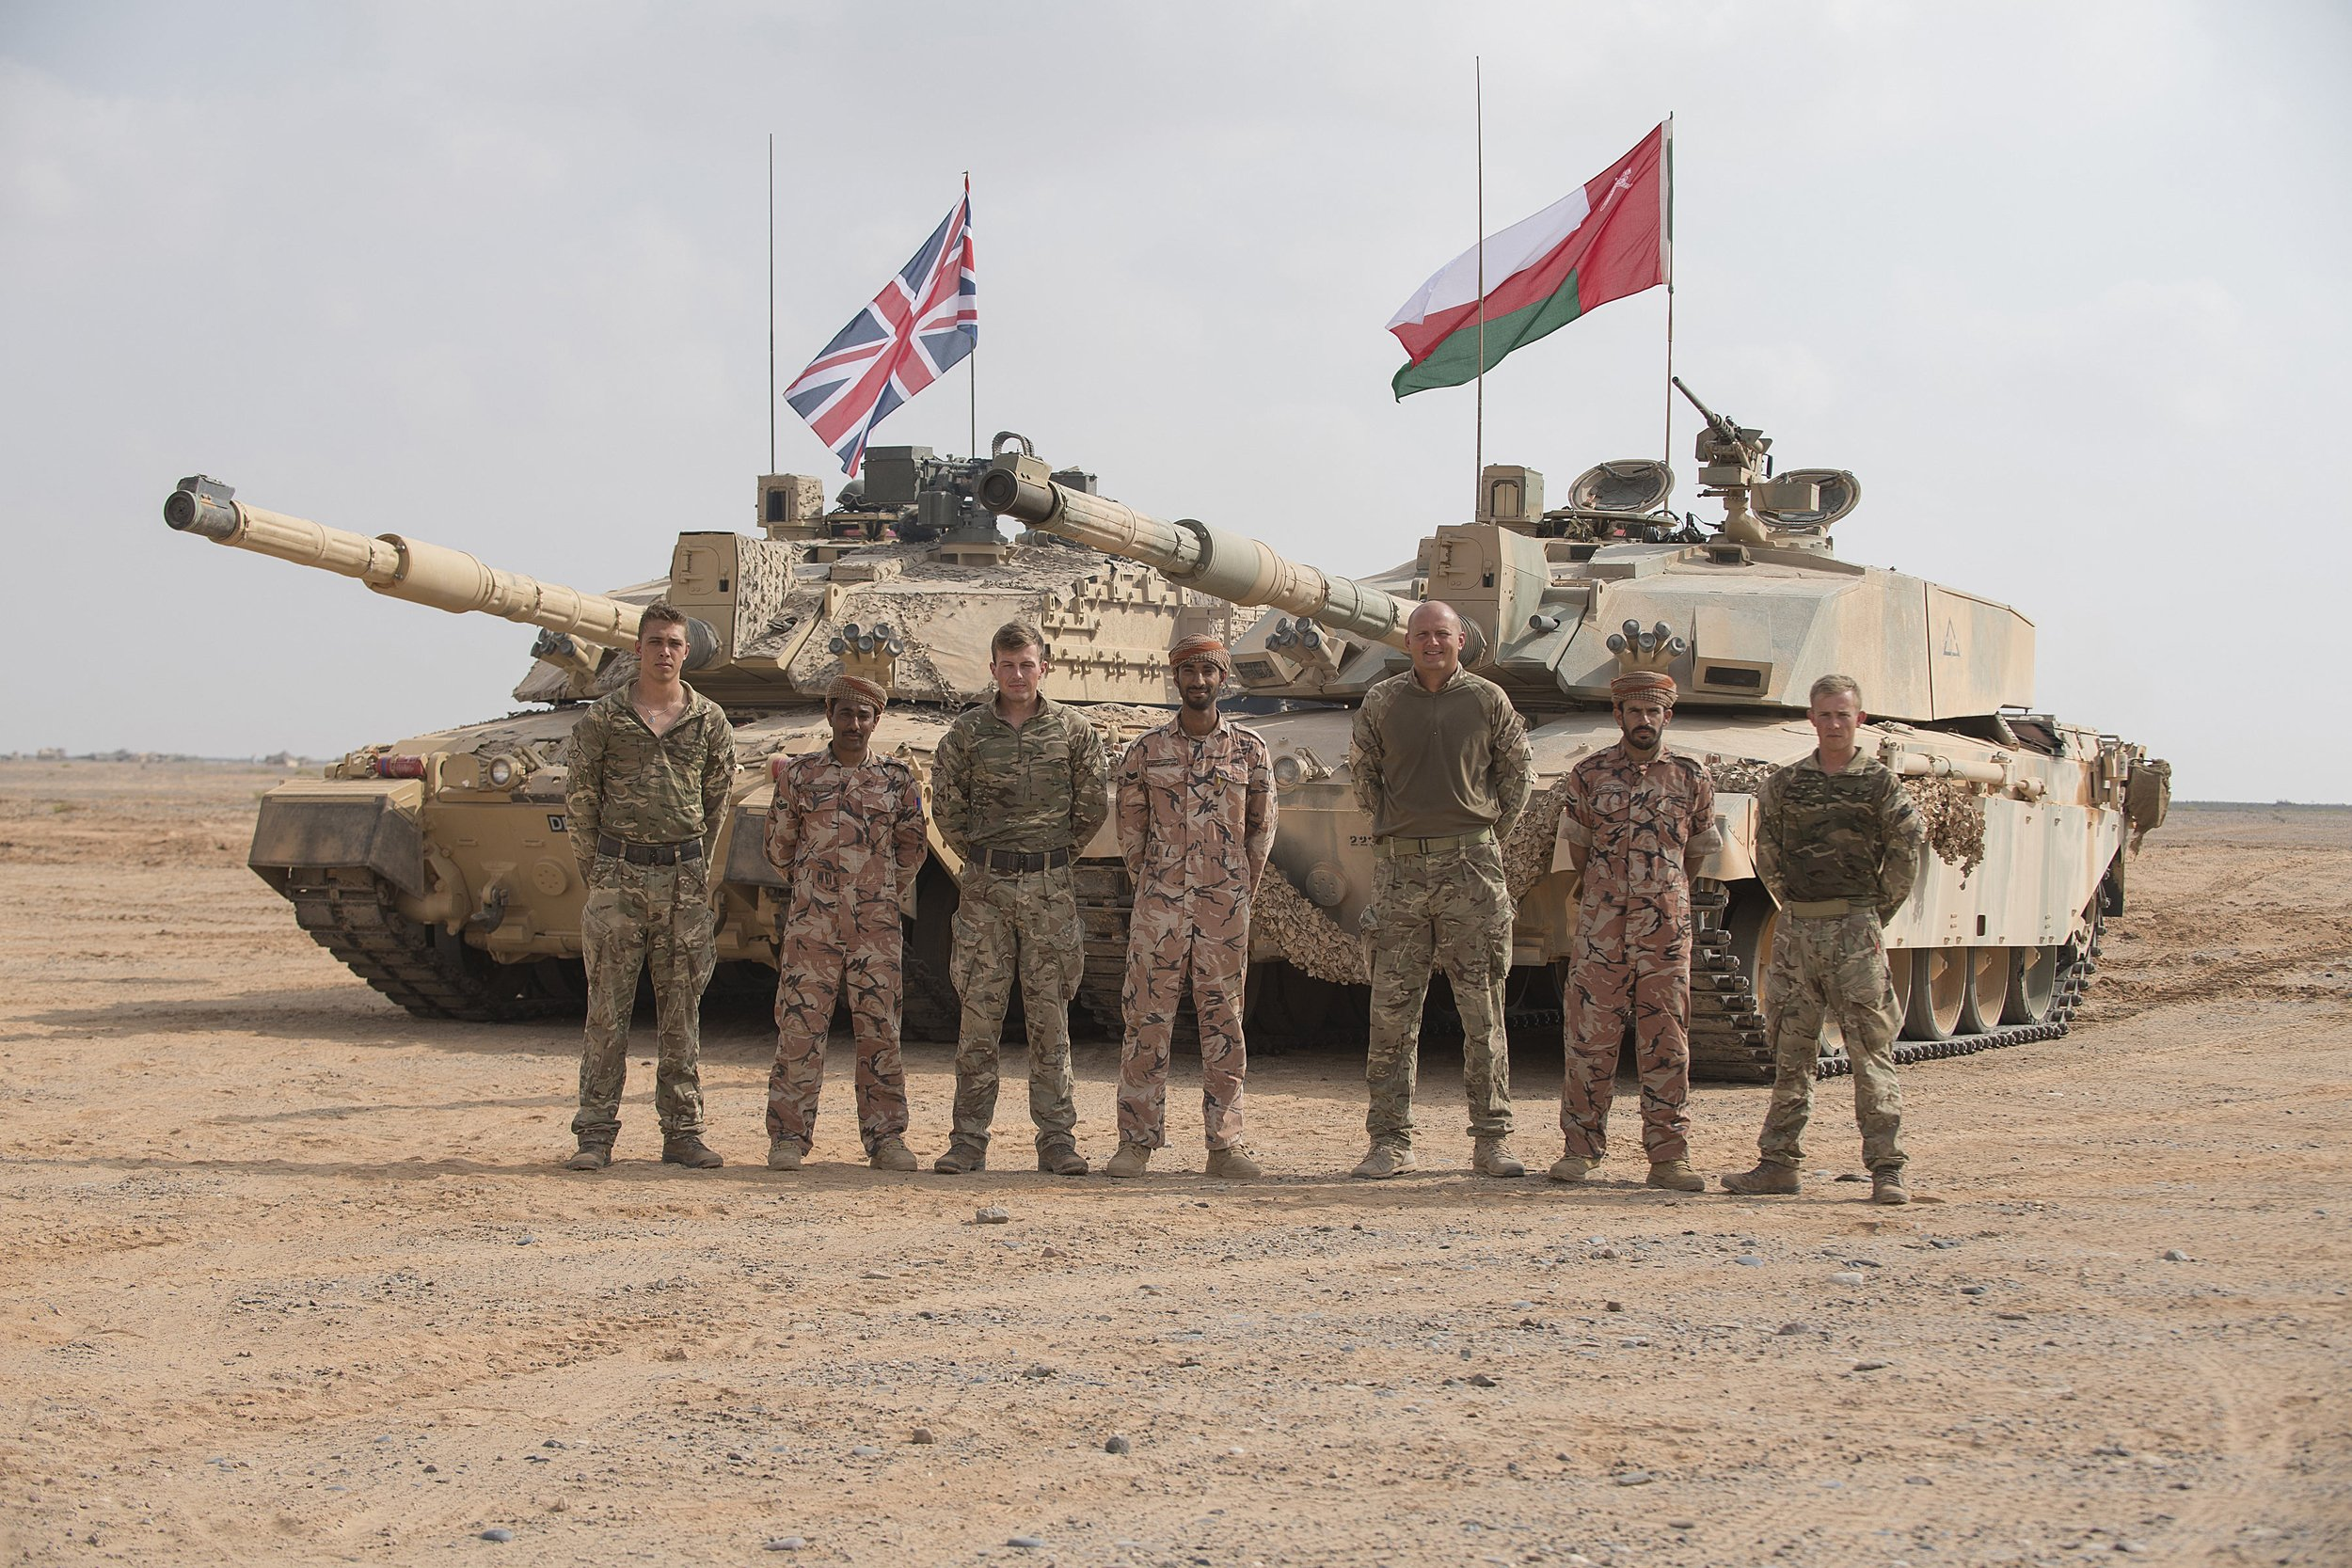 British military operating in scores of locations across Middle East